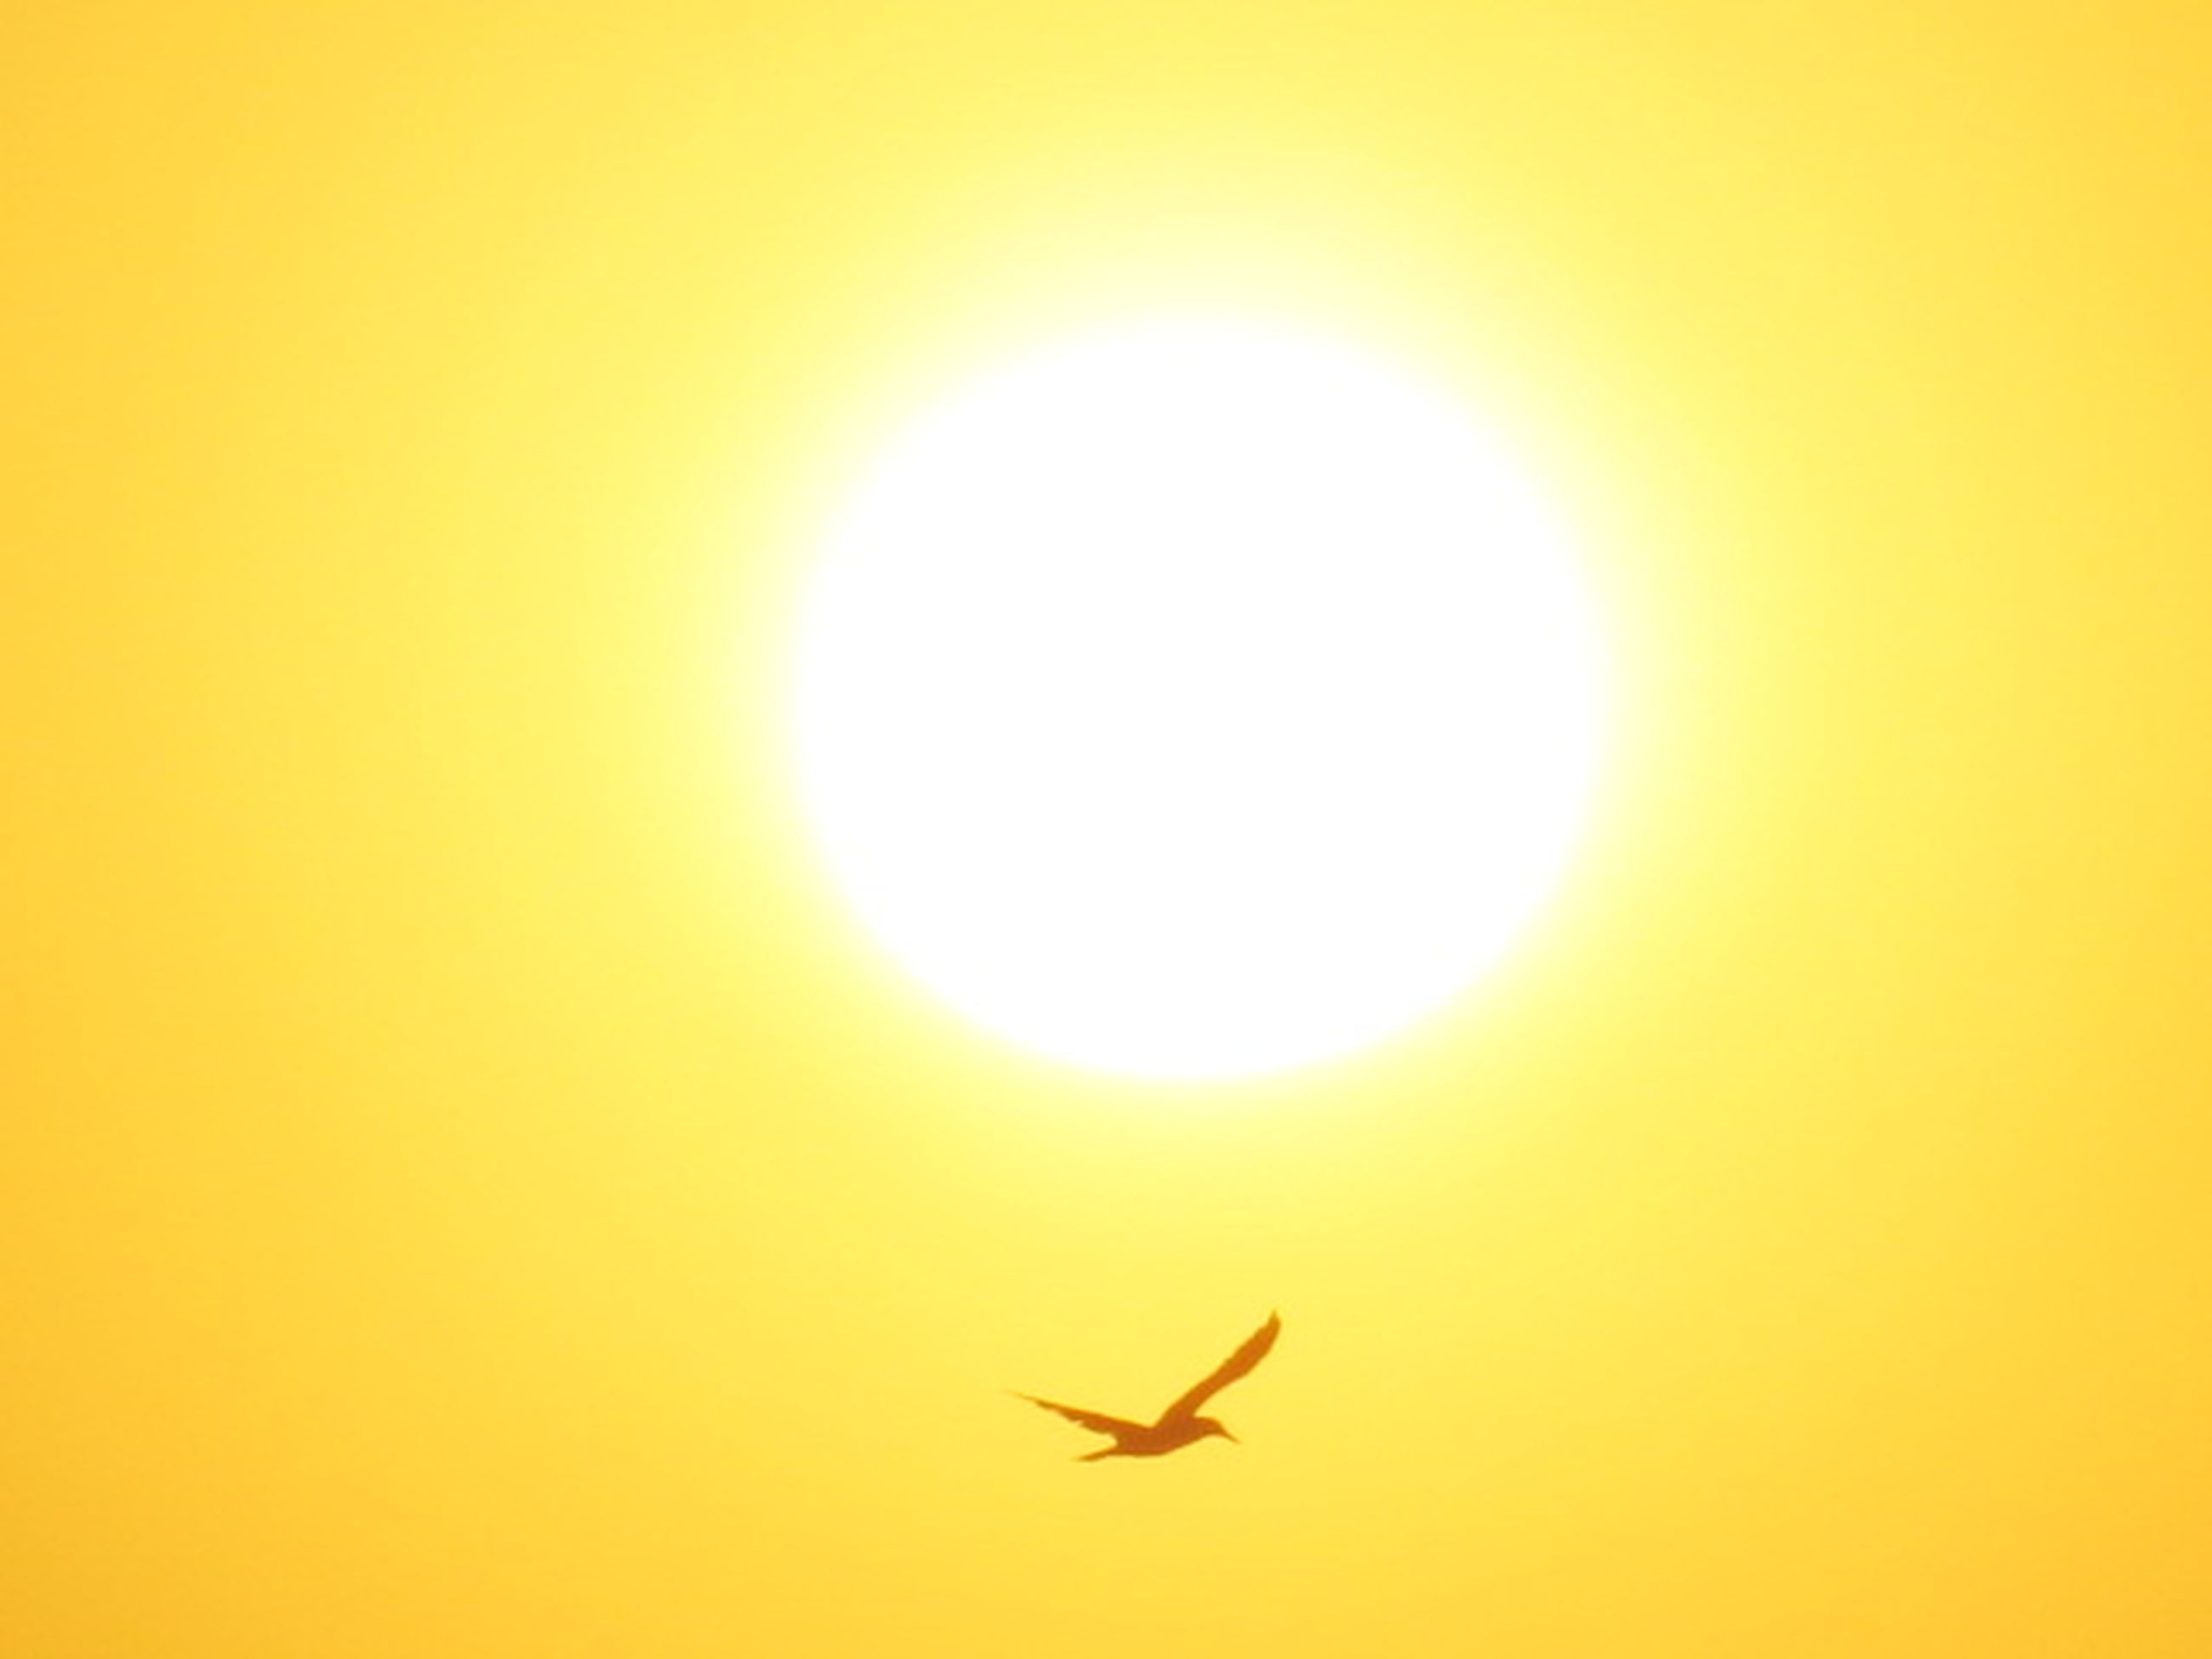 one animal, silhouette, flying, animal themes, animals in the wild, sunset, sun, yellow, animal wildlife, bird, outdoors, no people, full length, nature, day, spread wings, airplane, sky